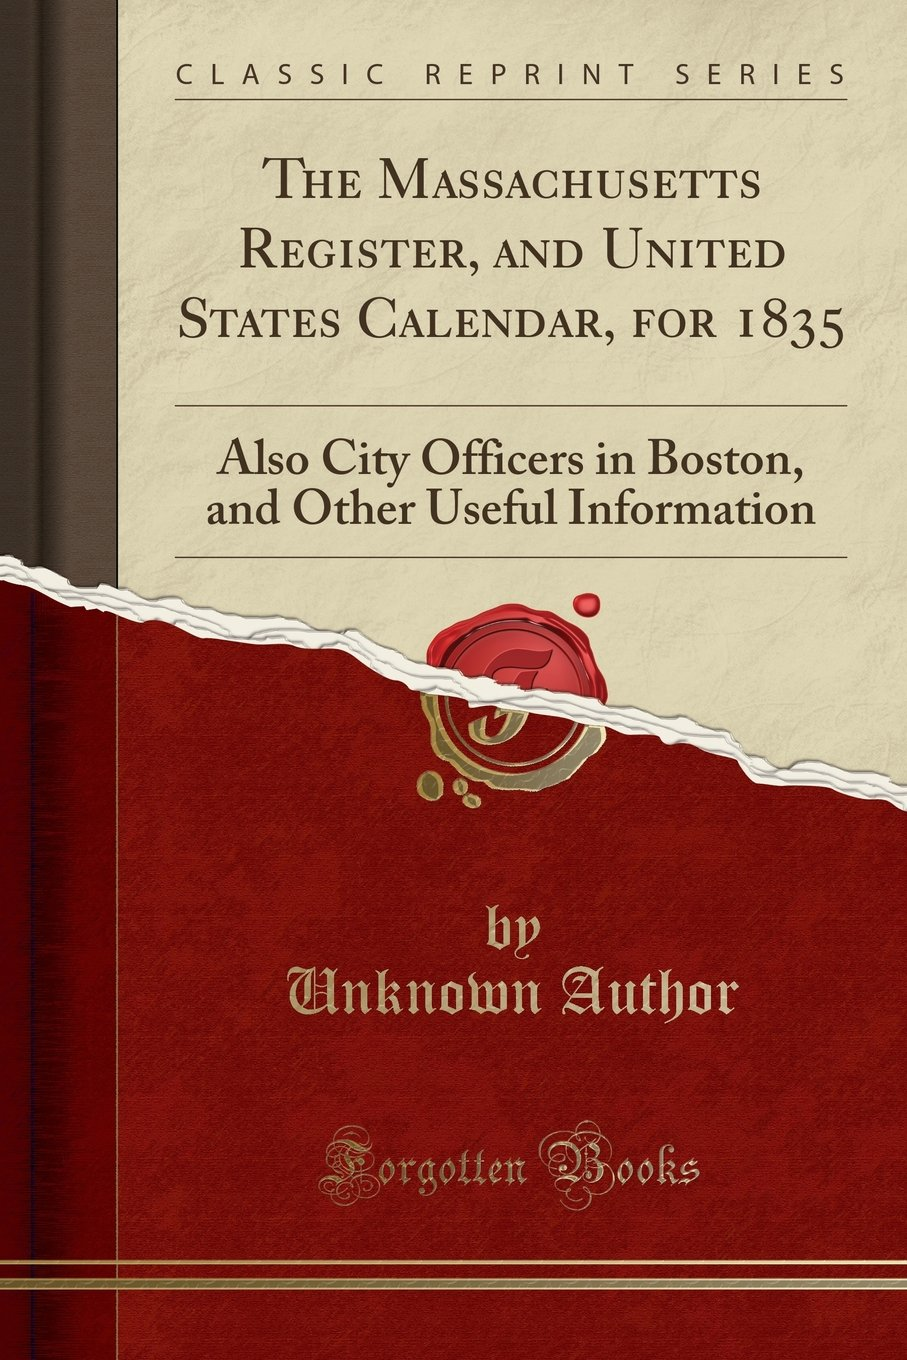 Download The Massachusetts Register, and United States Calendar, for 1835: Also City Officers in Boston, and Other Useful Information (Classic Reprint) PDF